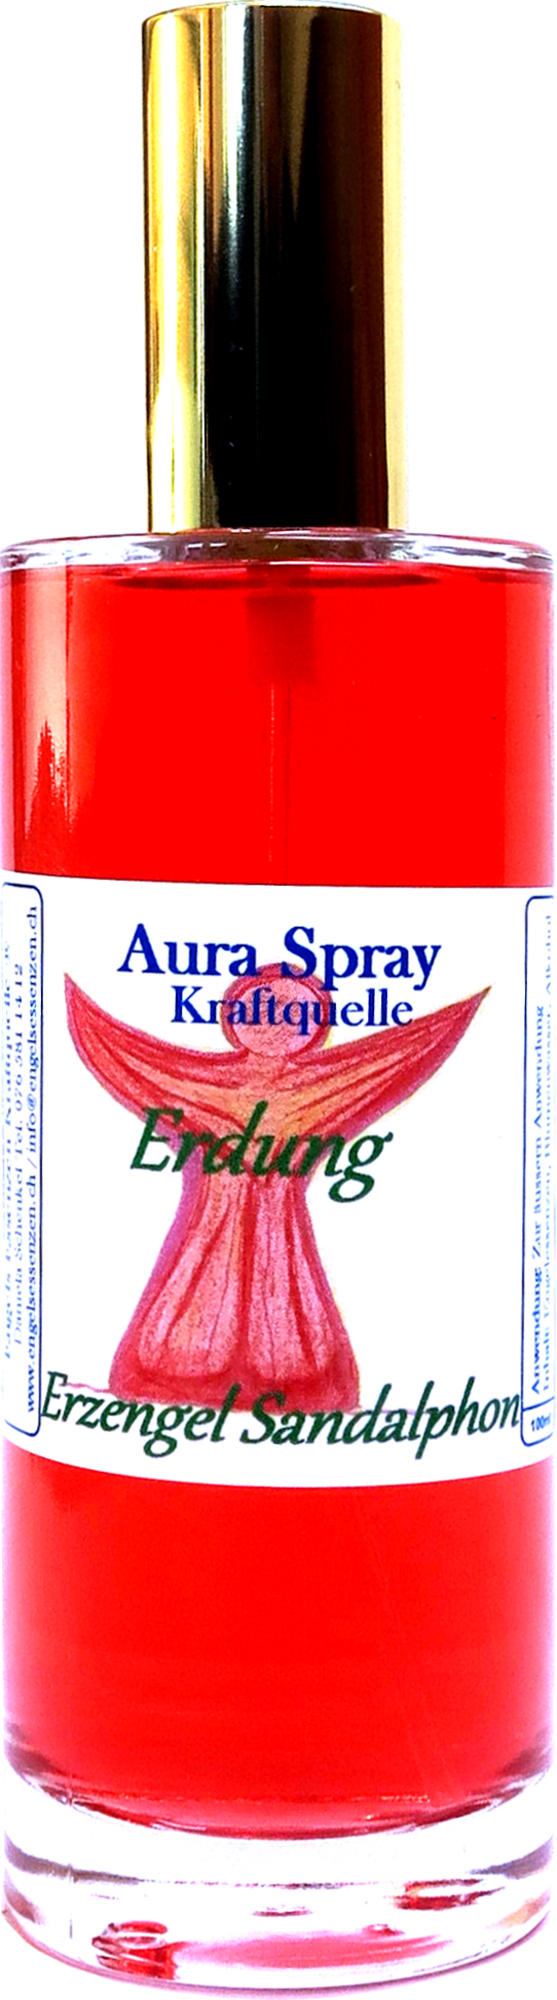 Spray riequilibrare il 1 chakra sicurezza e forza interiore